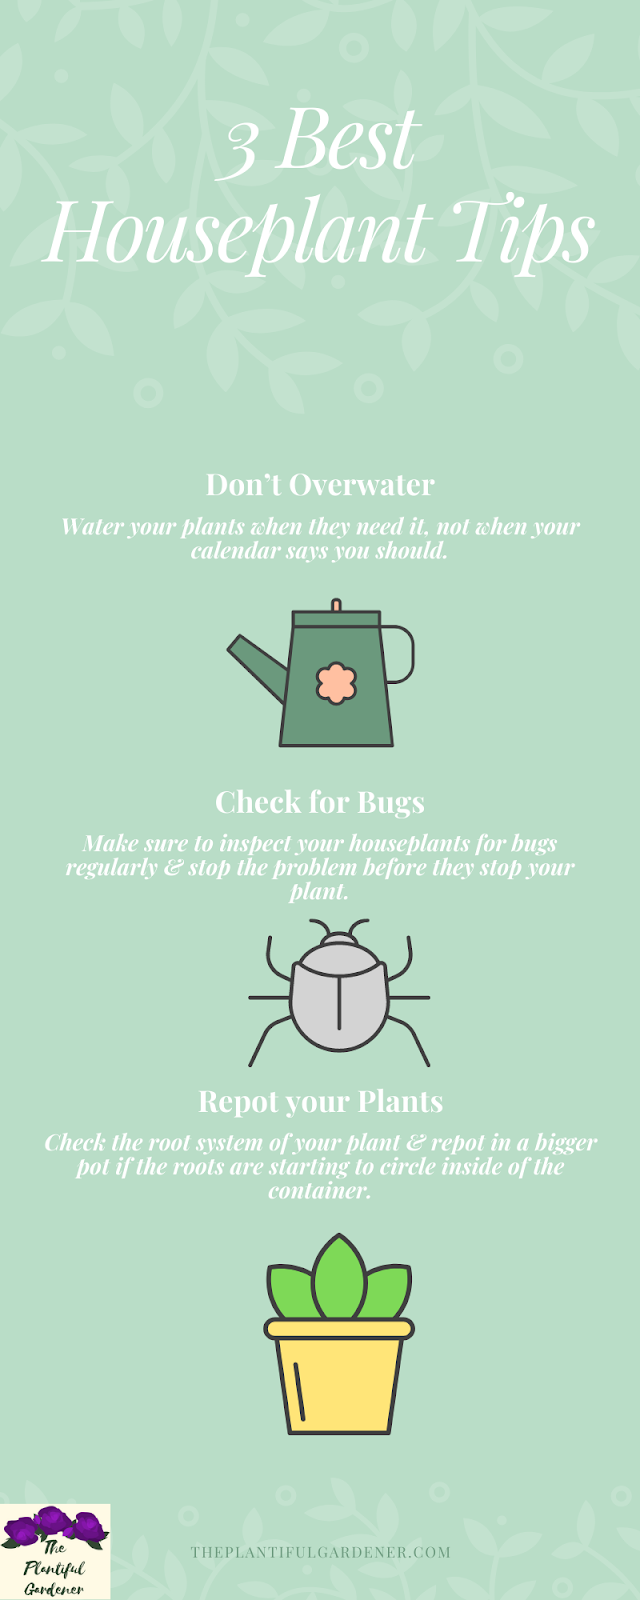 houseplant tips infographic picture